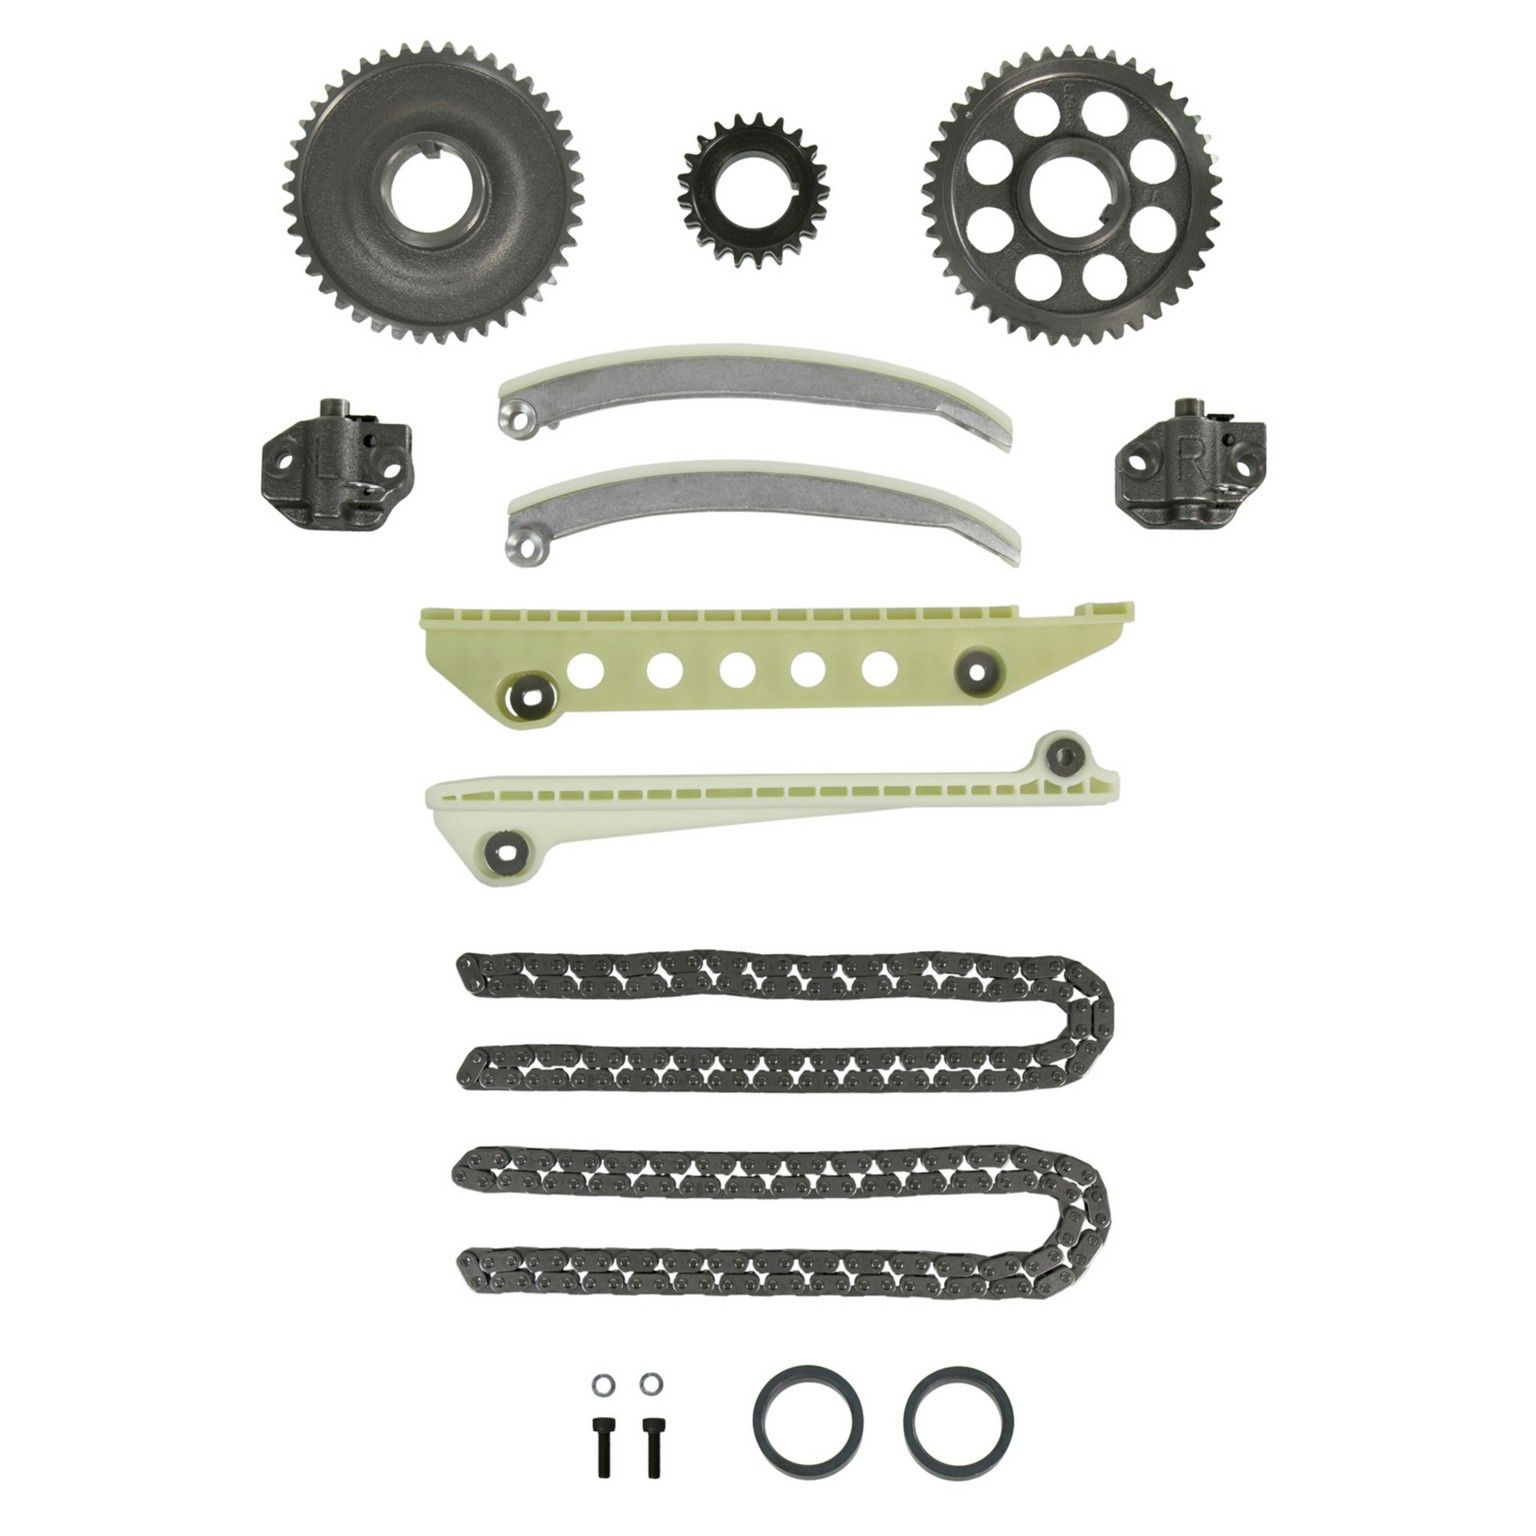 Ford Mustang Engine Timing Set Replacement Cloyes Dj Rock Seal Belt 1999 8 Cyl 46l Sealed Power Kt 4050s Type Complete Includes Sprockets Chains Tensioners Arms